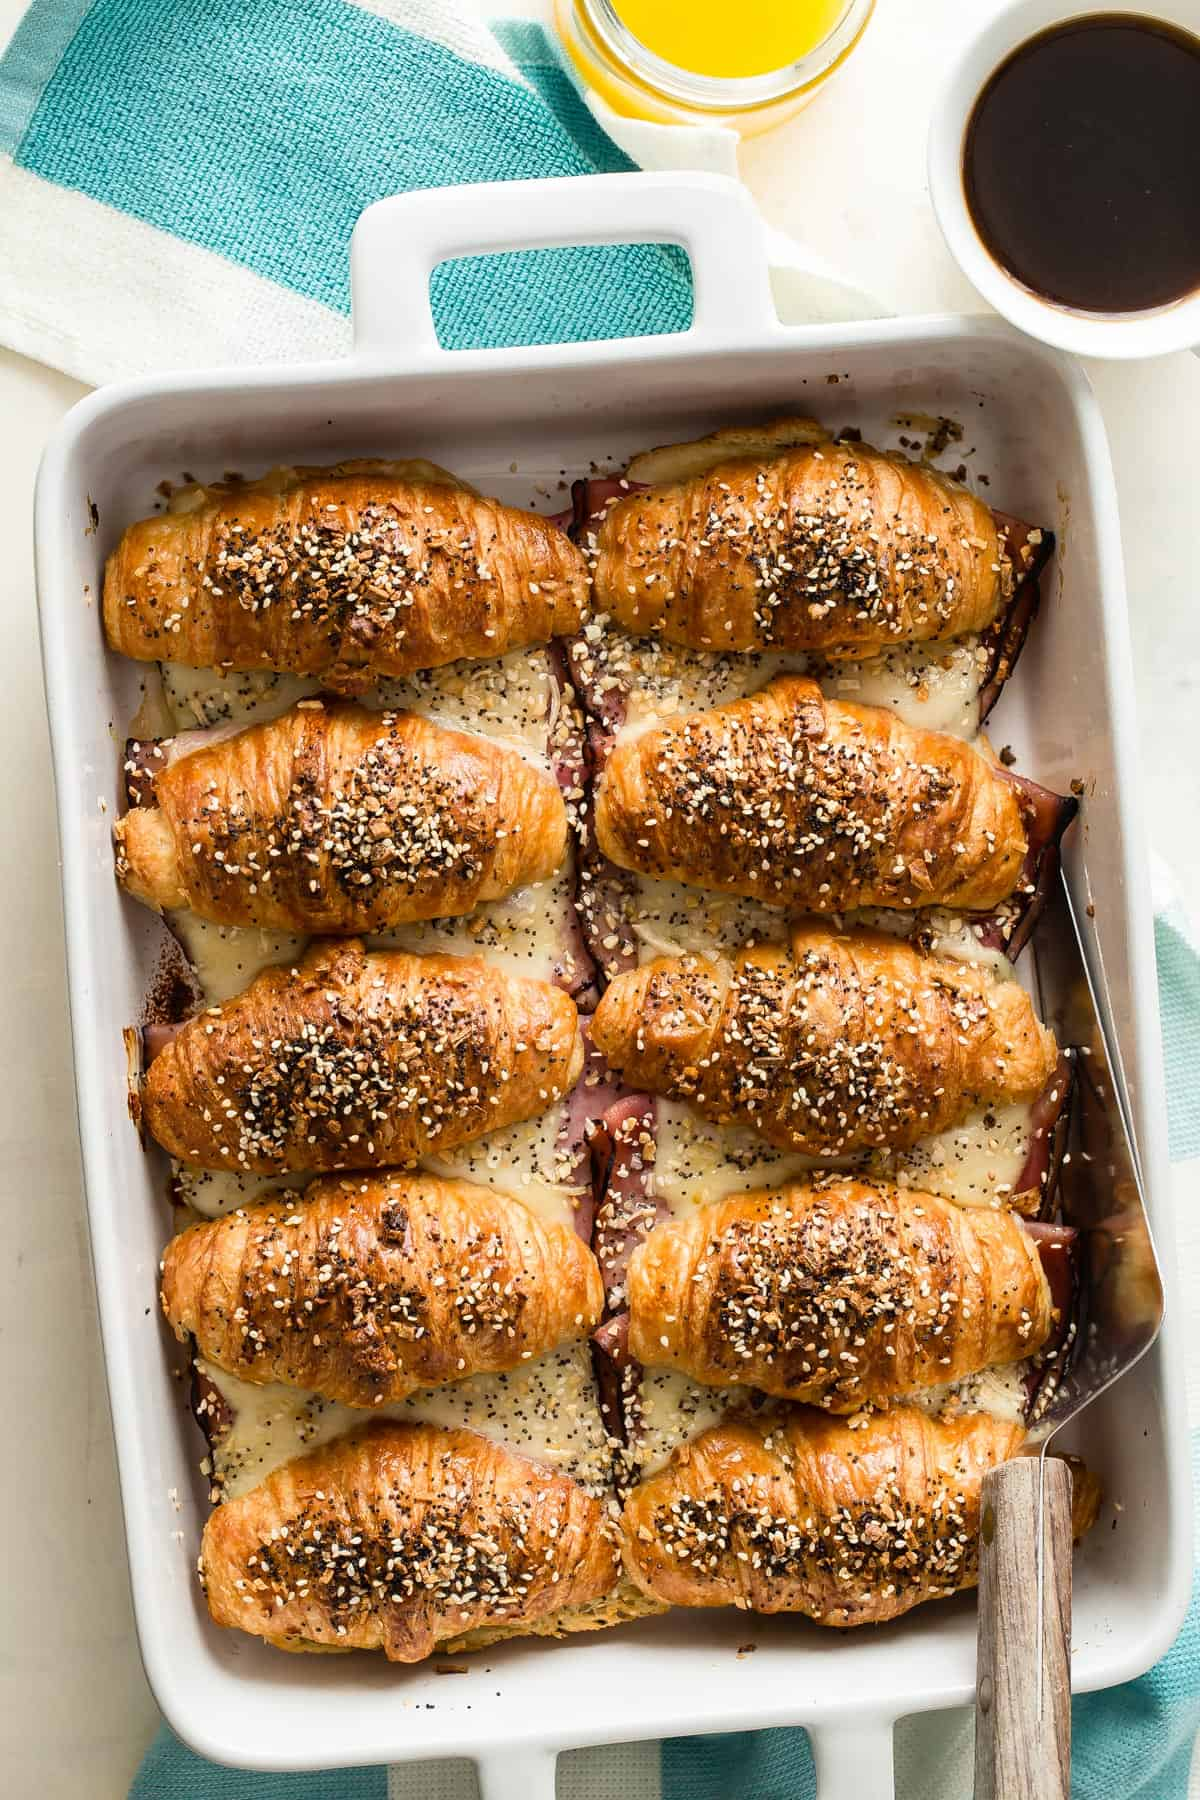 Ham and Cheese Croissants topped with everything bagel seed is how to do breakfast! These are so easy to make and will be gone from the dish in a hot second.